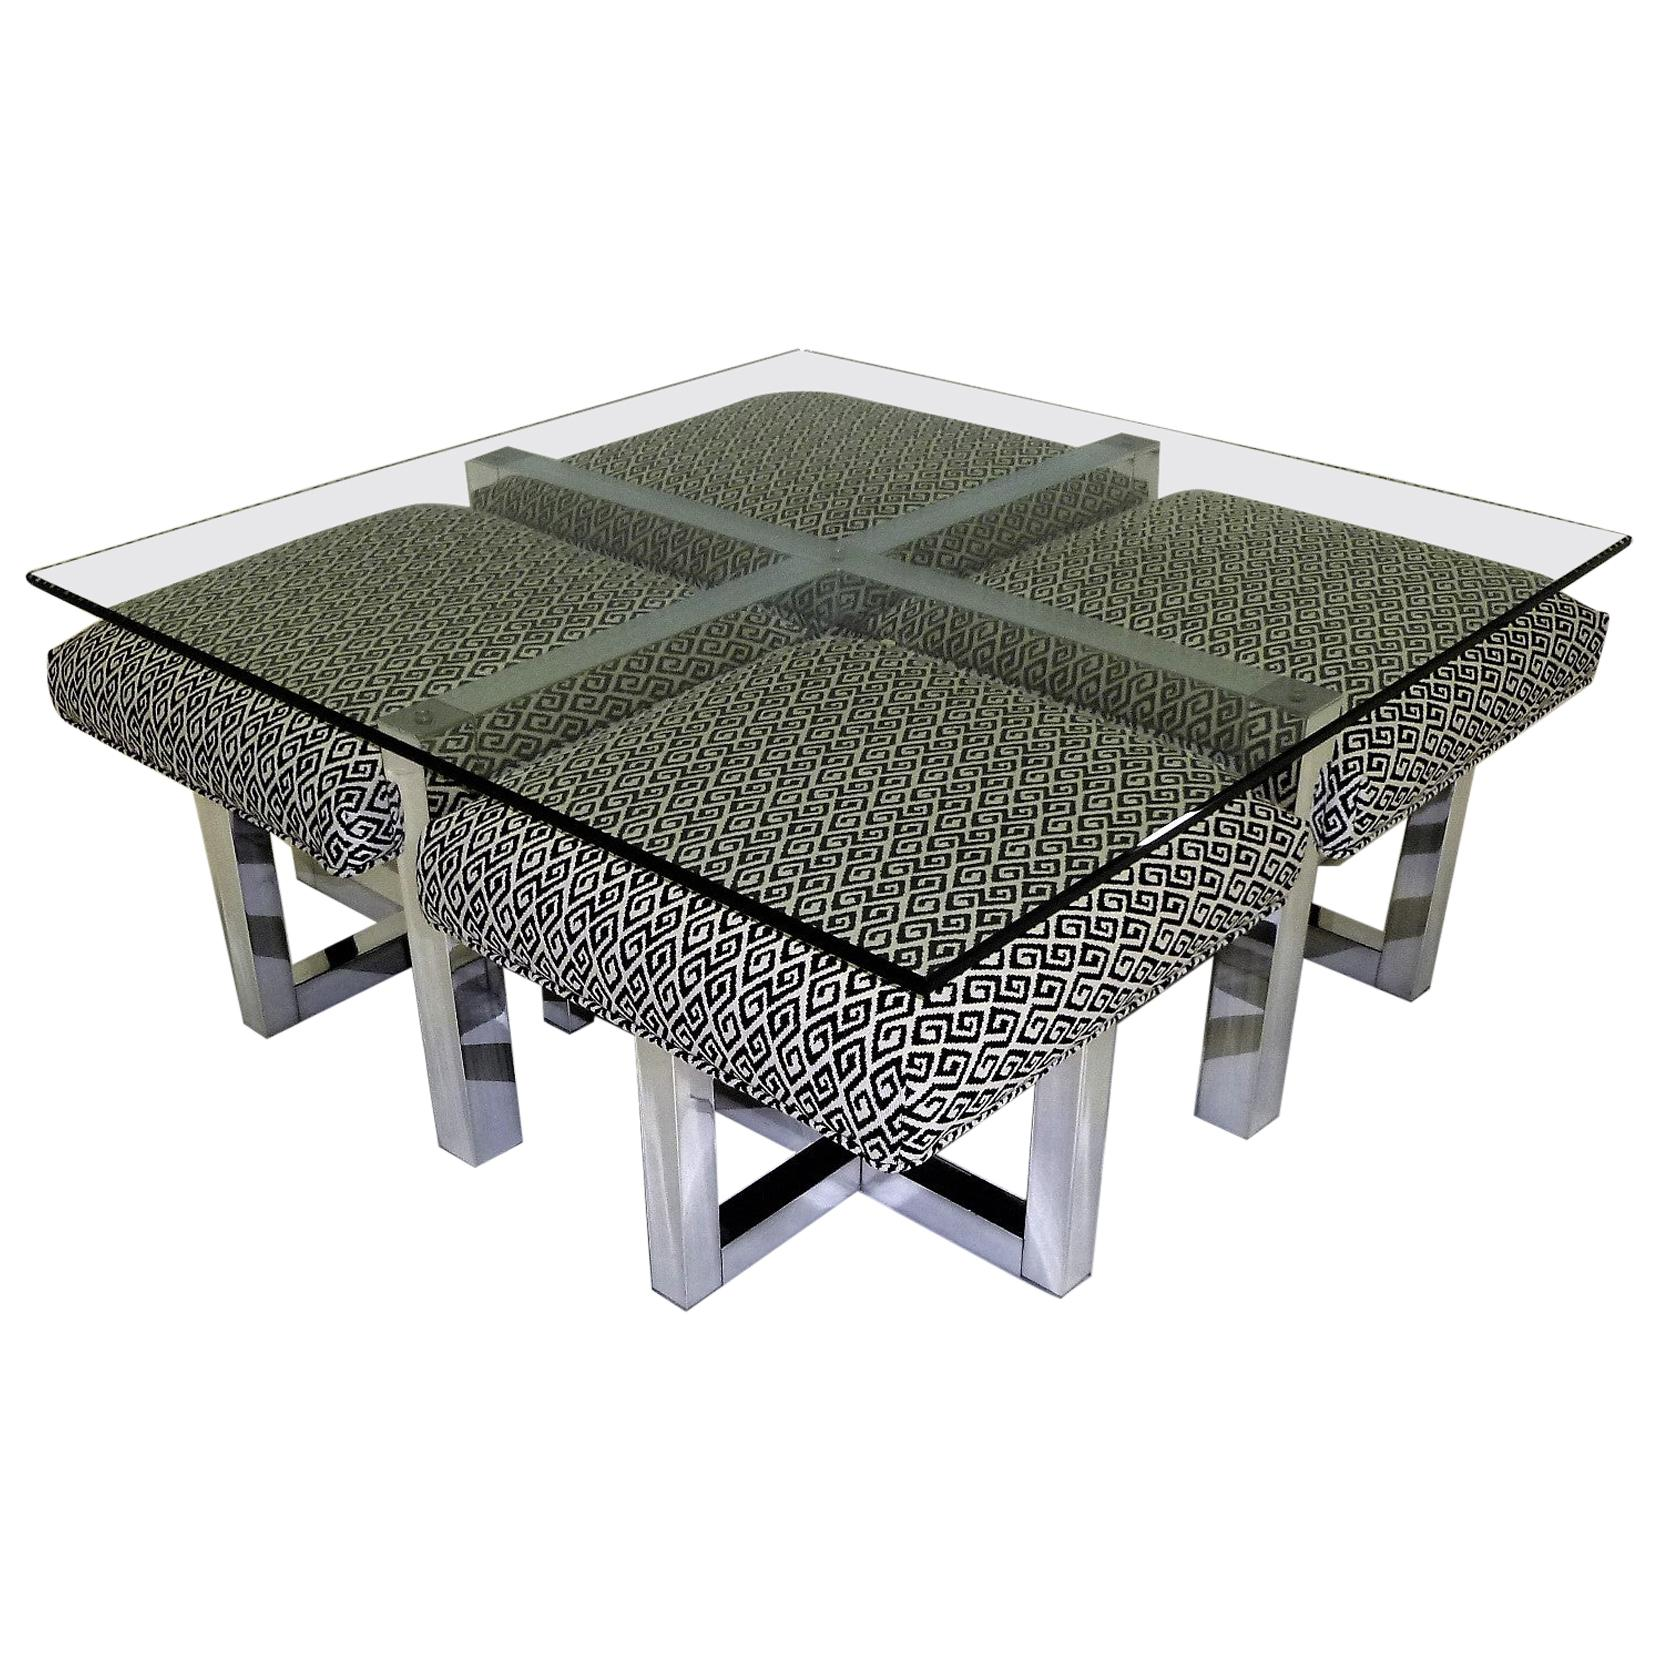 1960s milo baughman style glass top coffee table with nesting ottomans